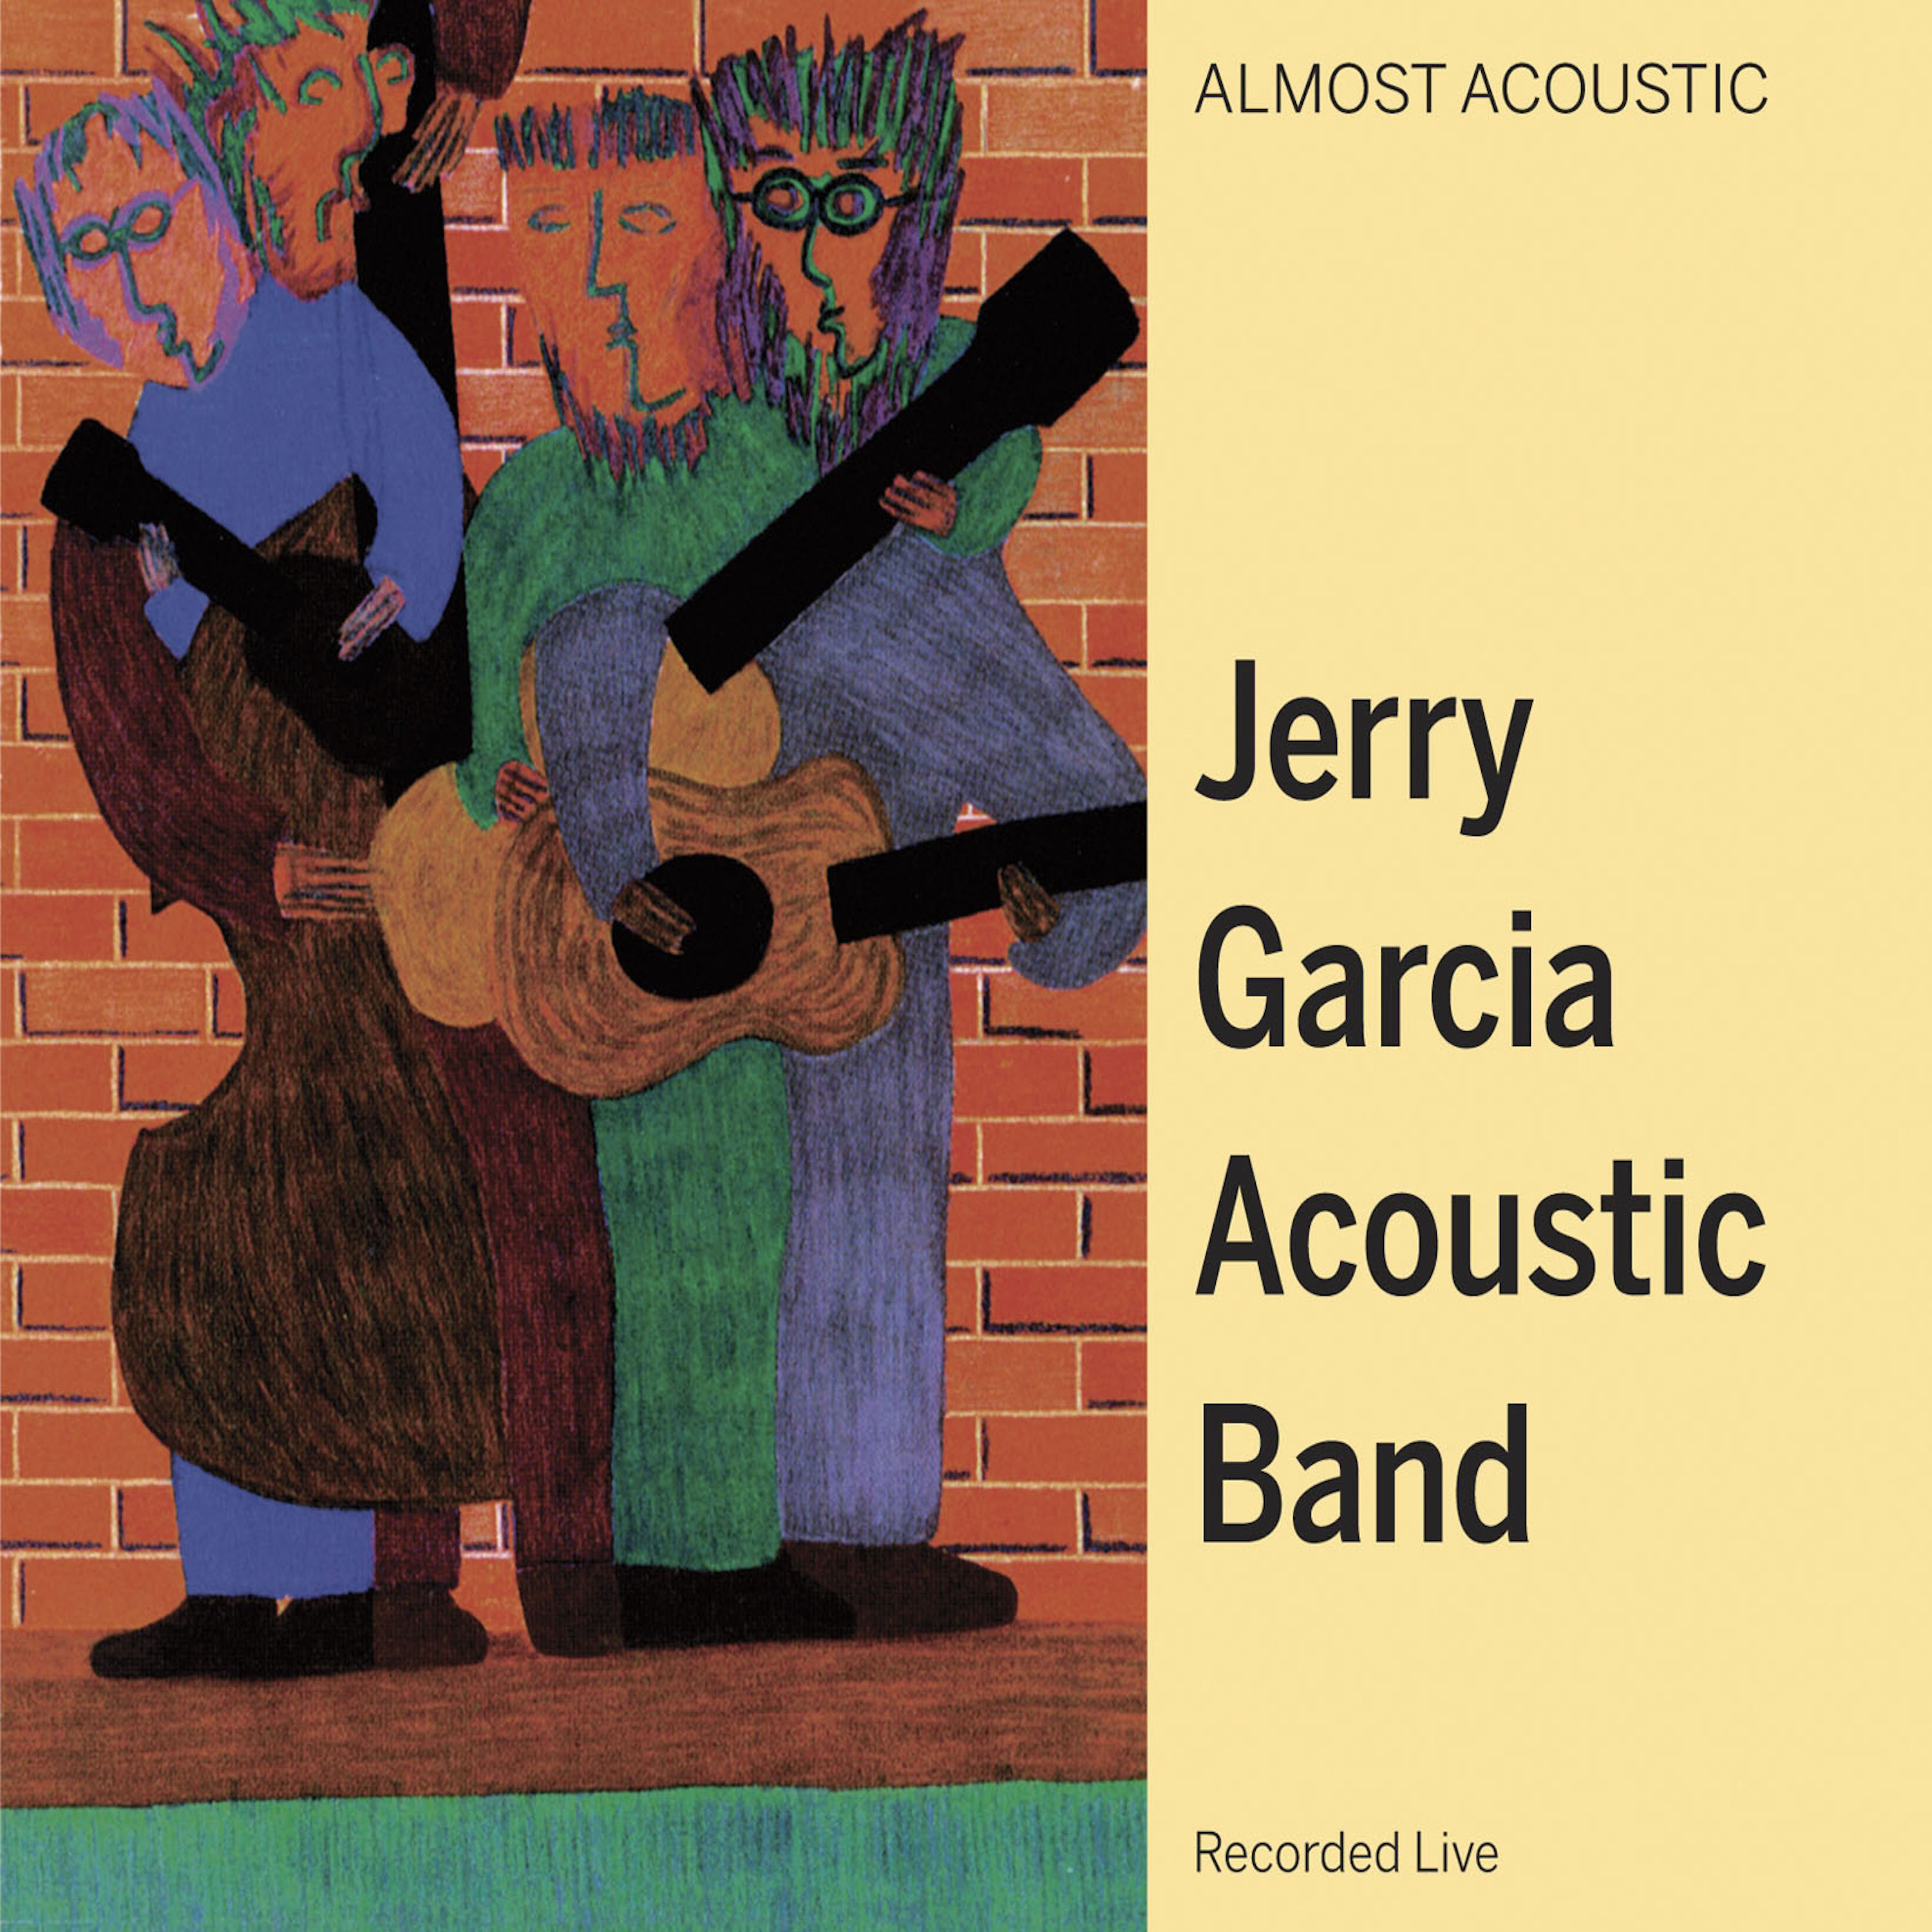 Jerry Garcia Acoustic Band - Almost Acoustic BF2018